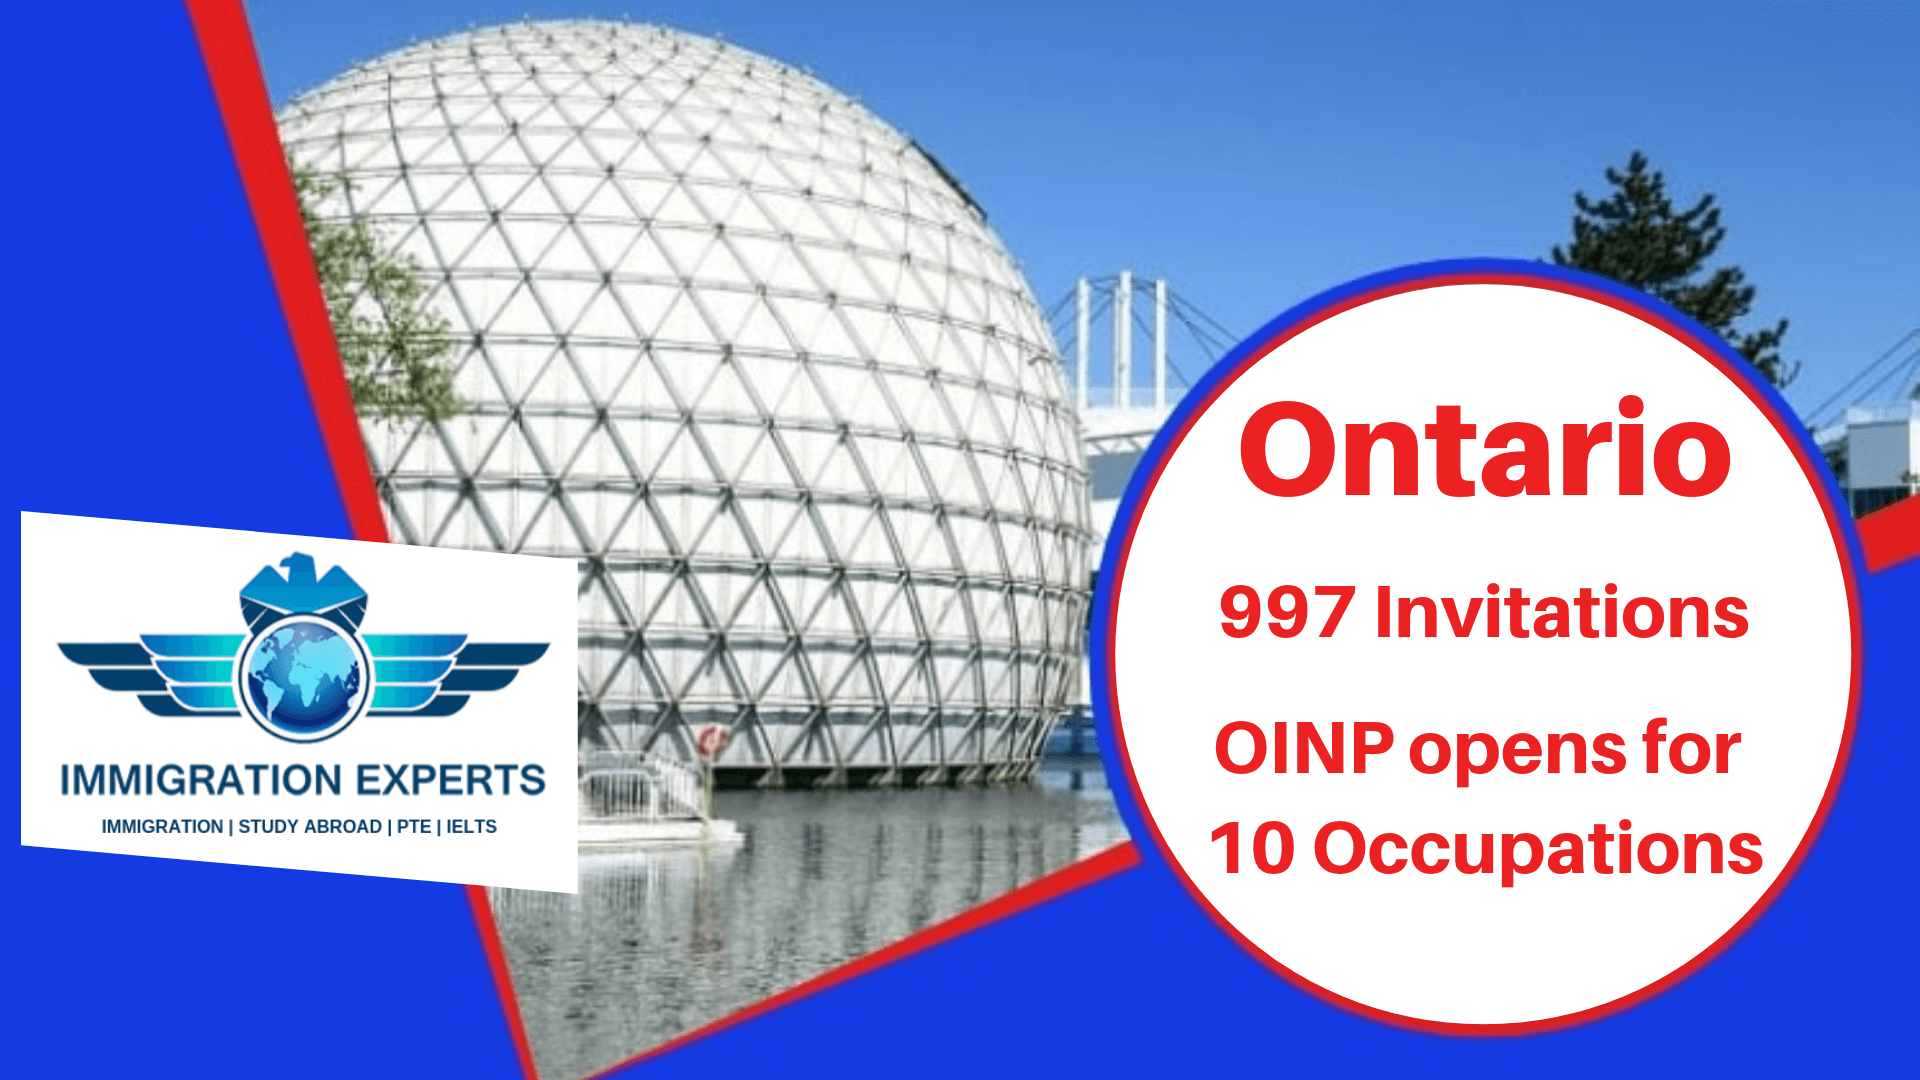 Ontario PNP targets Express Entry candidates Send 1000 Invitations